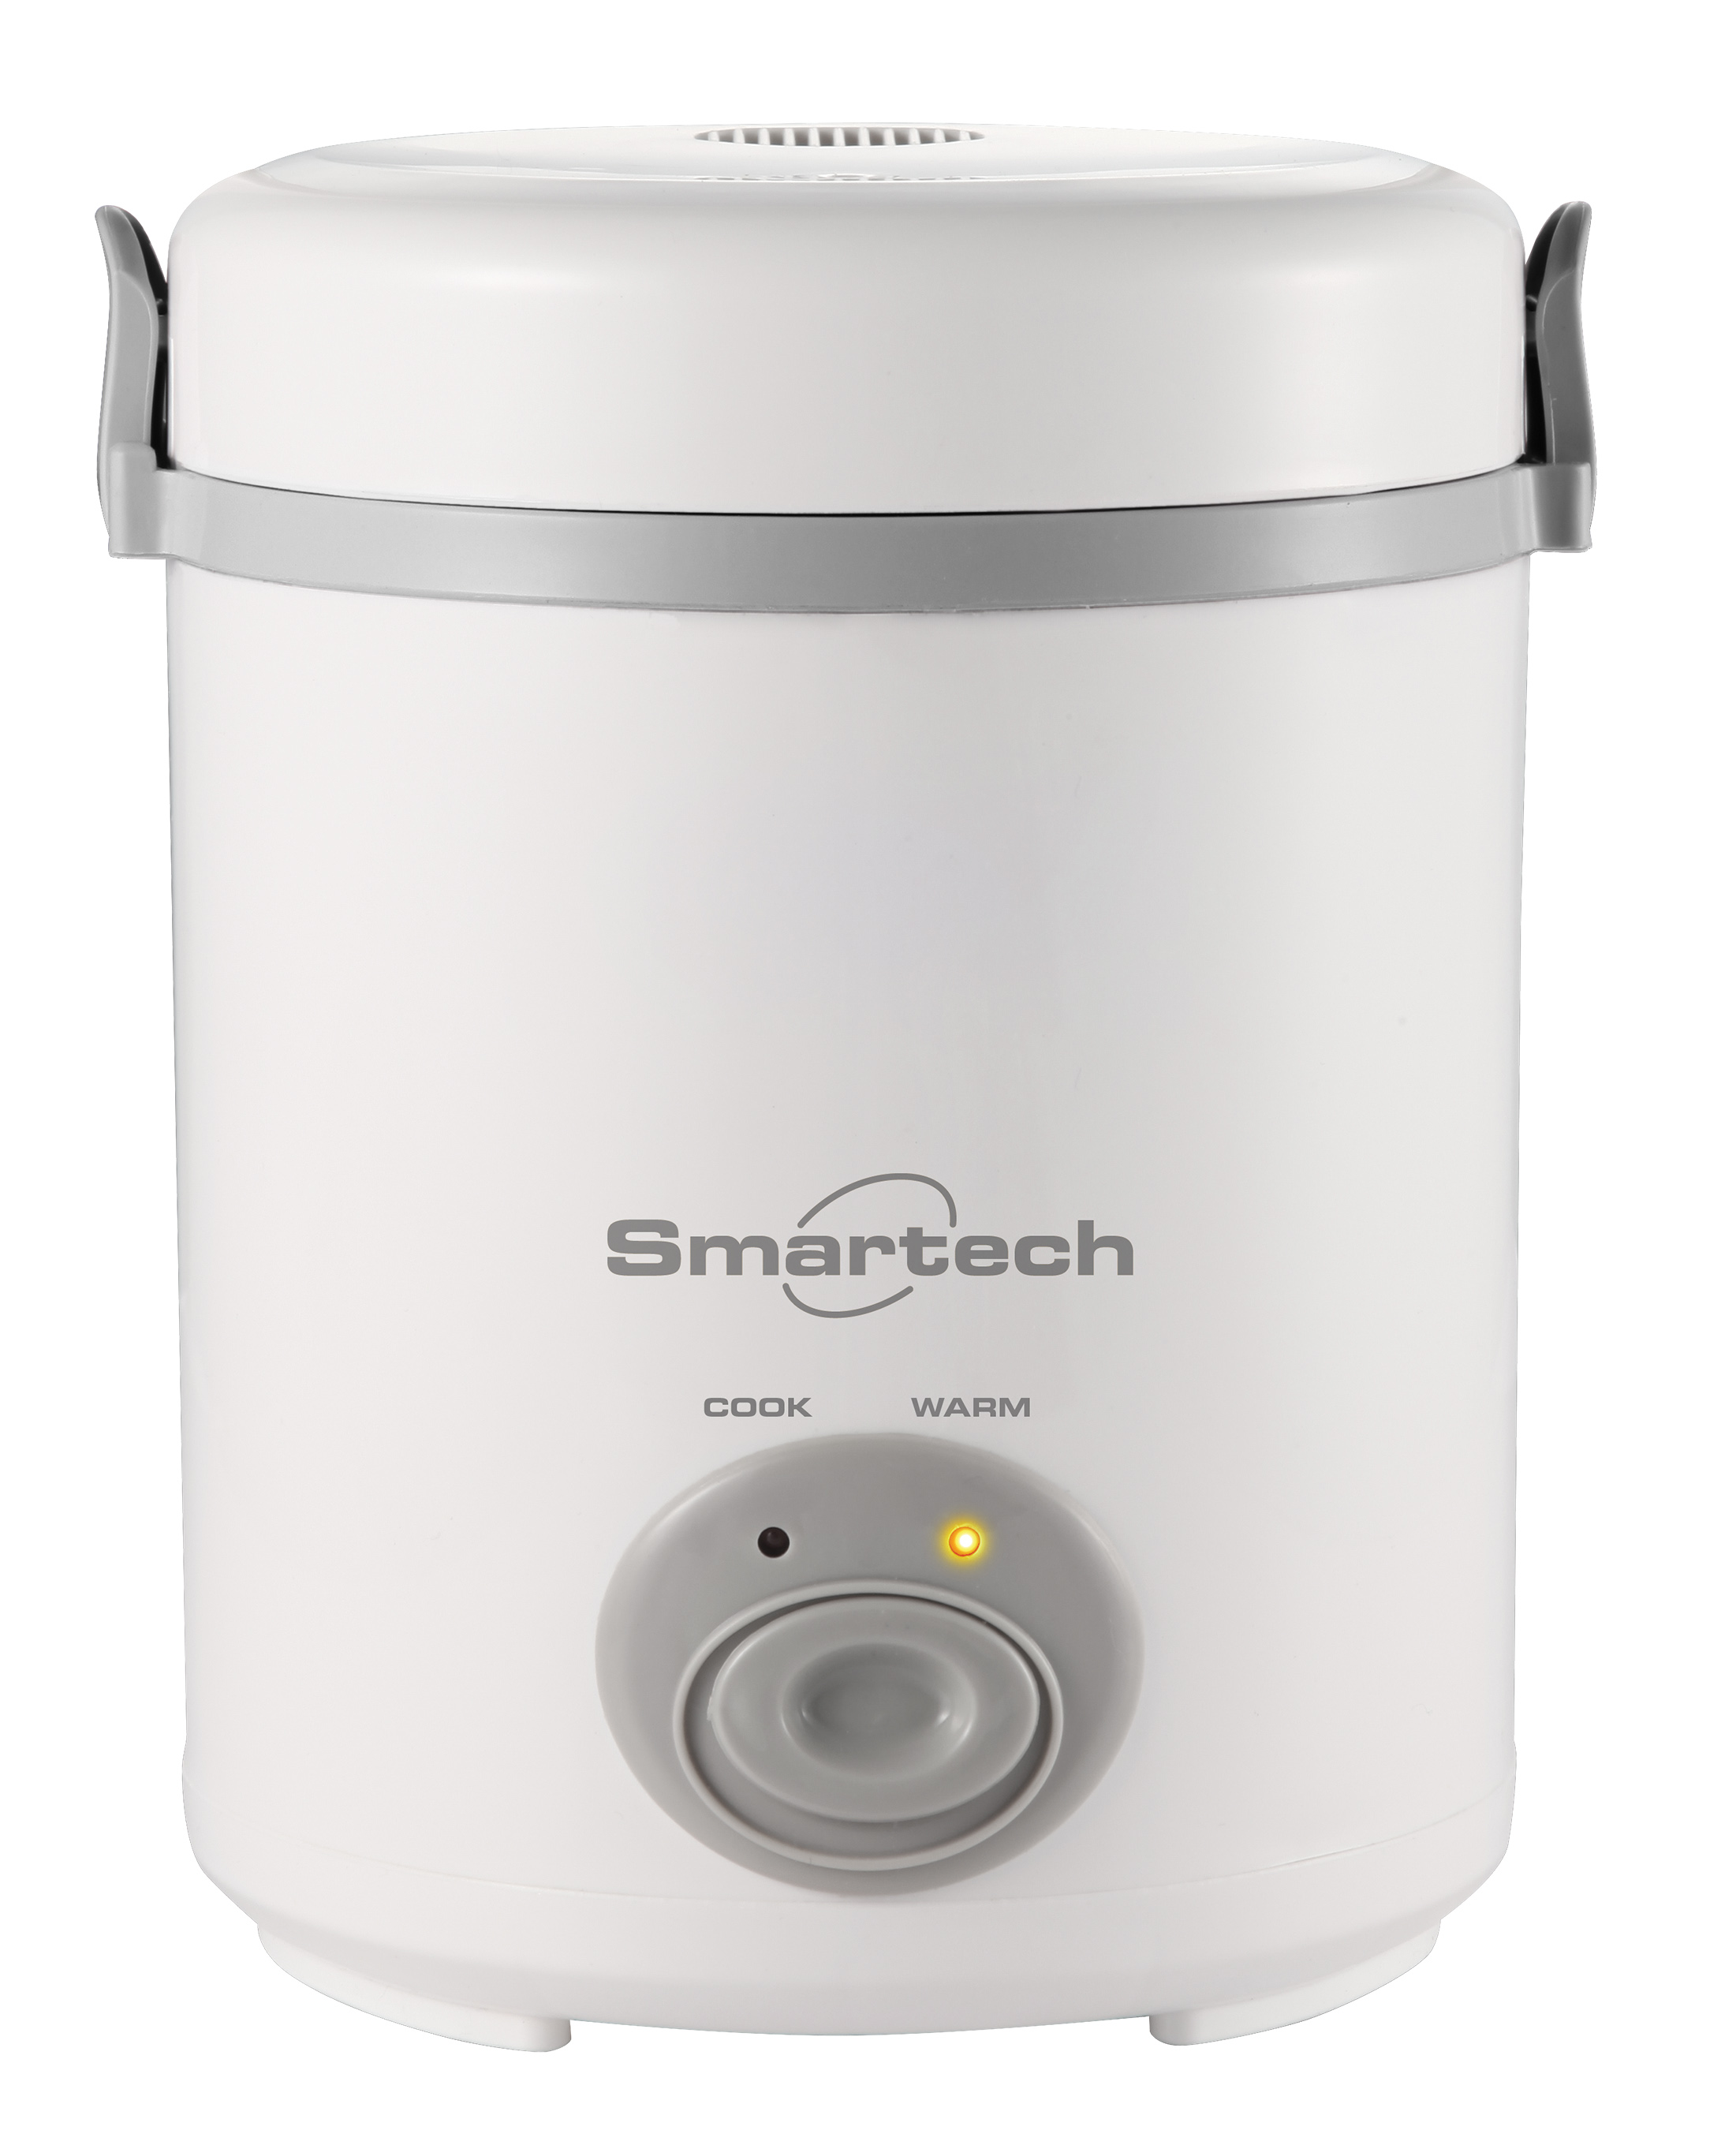 Smartech 0.8L Rice Cooker